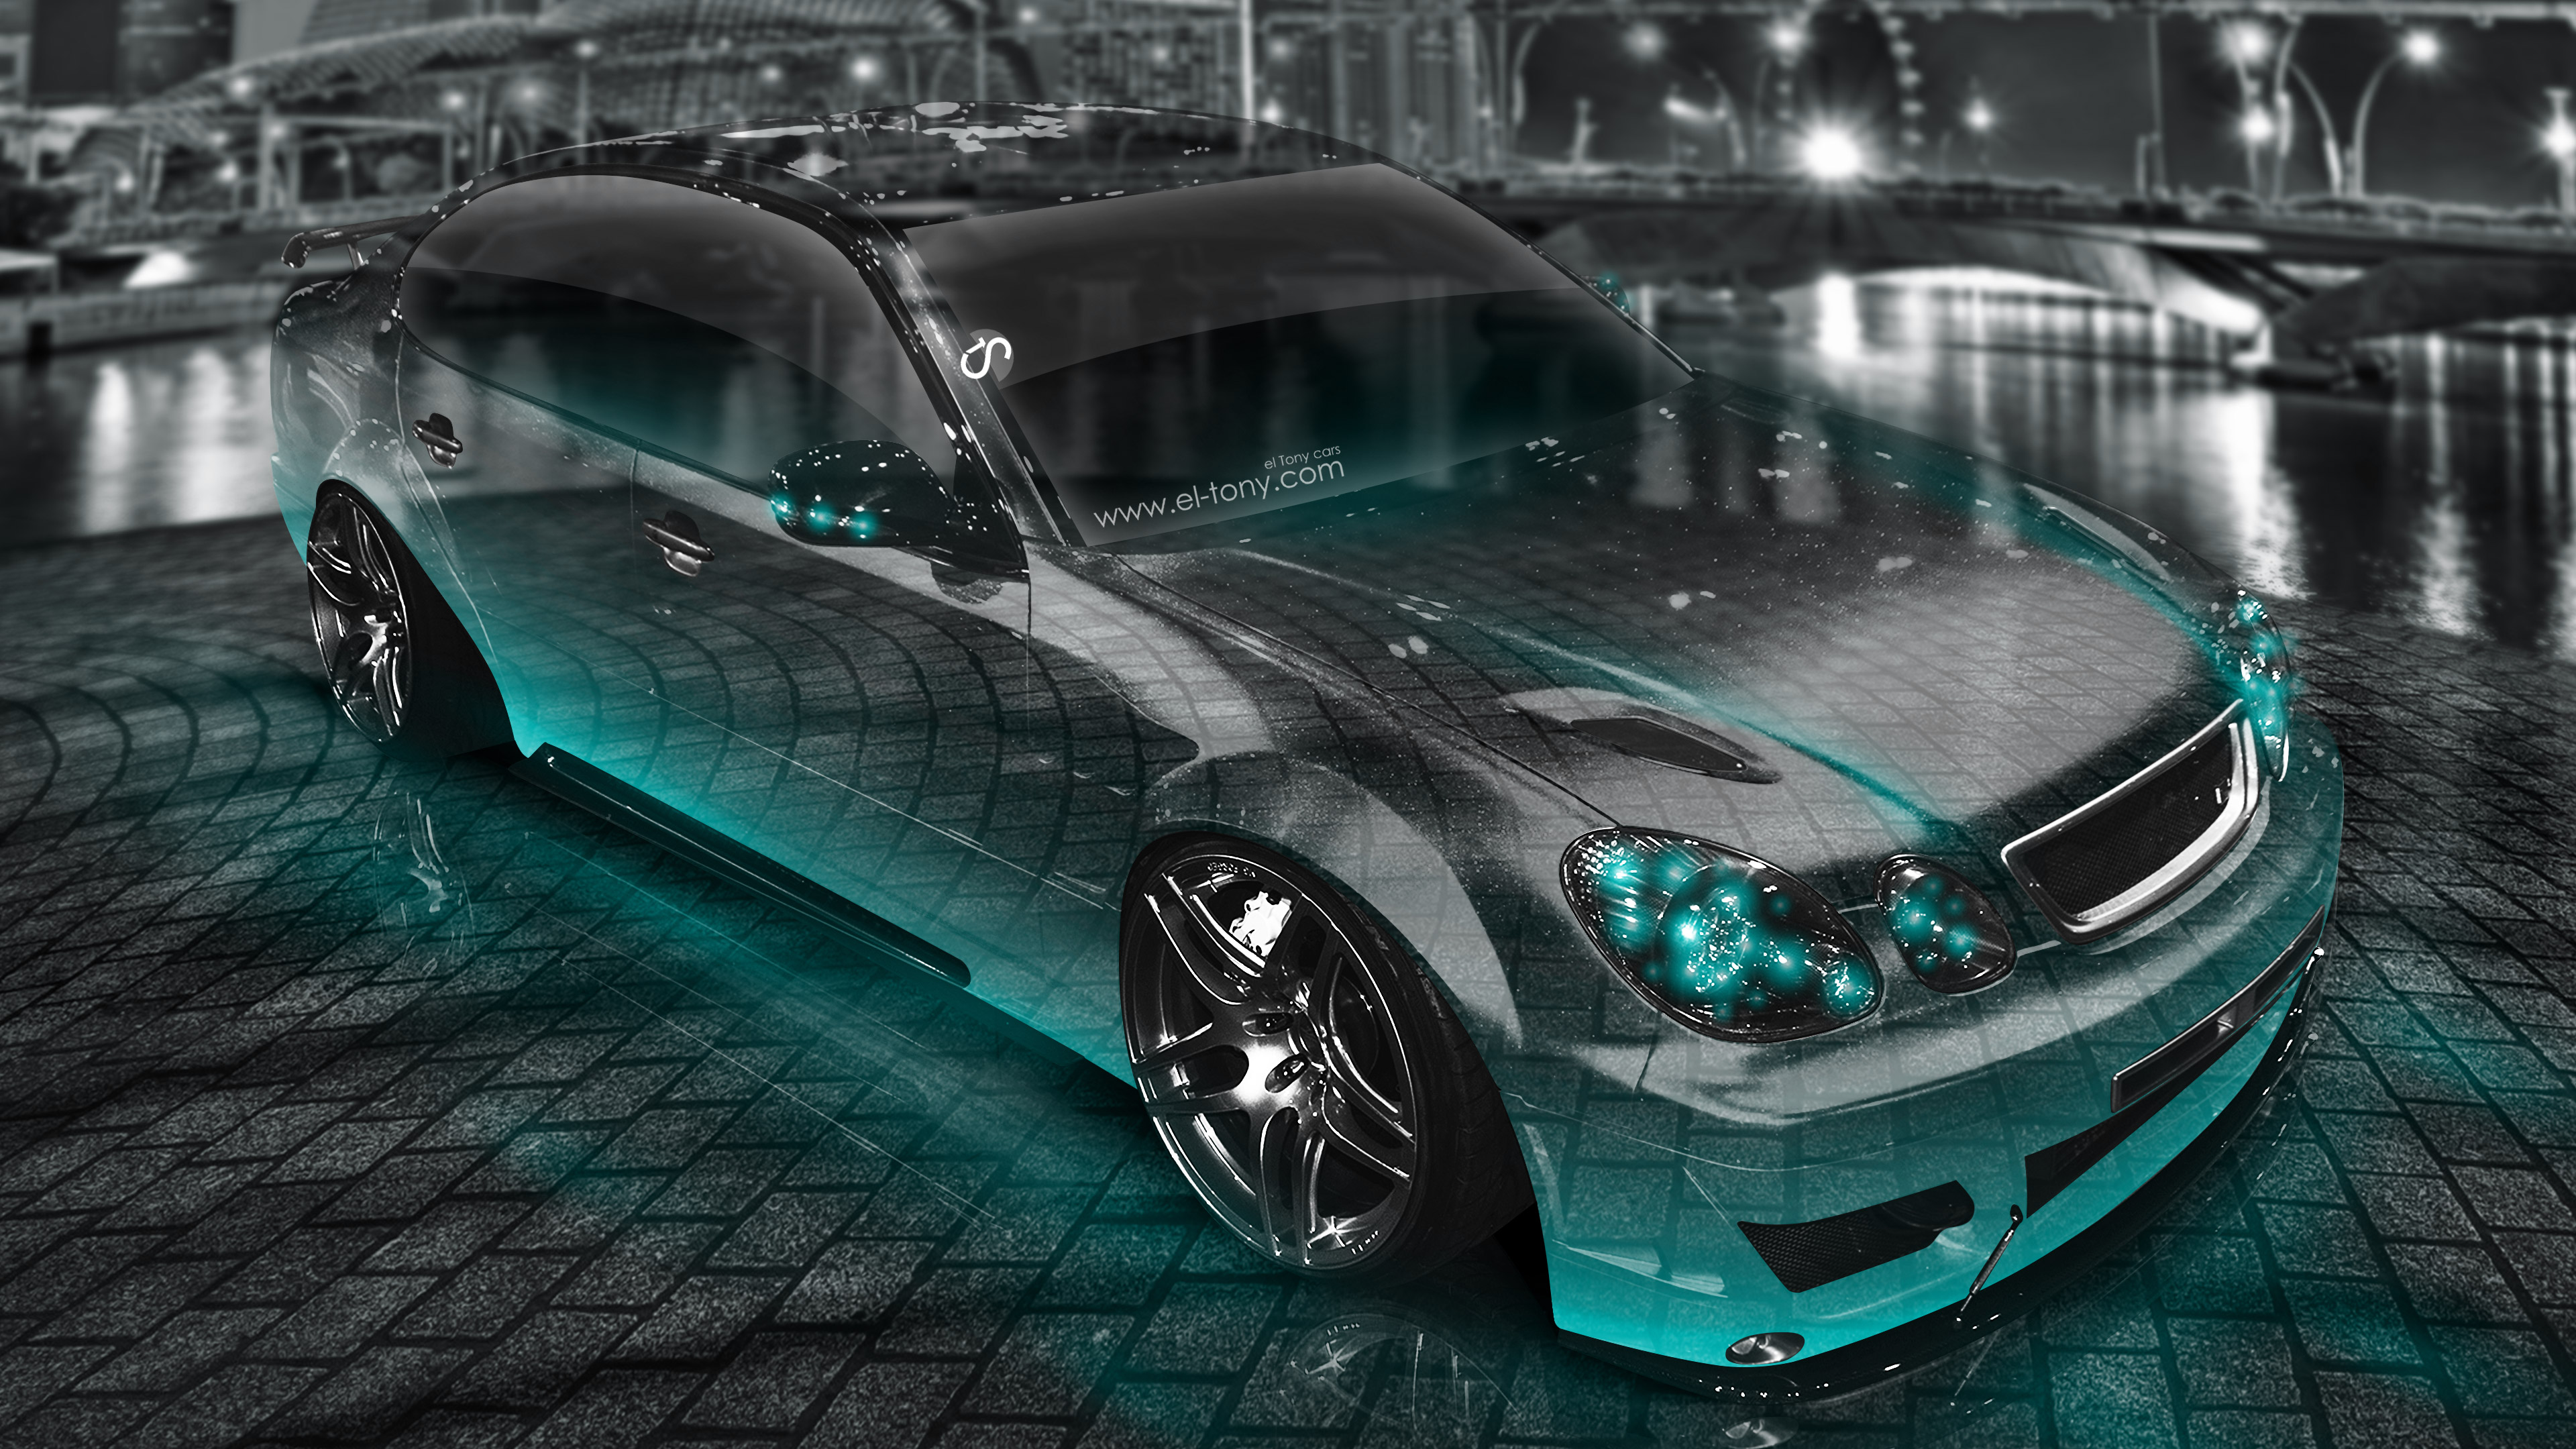 Toyota Chaser JZX100 JDM Tuning Crystal City Night Car 2016 .